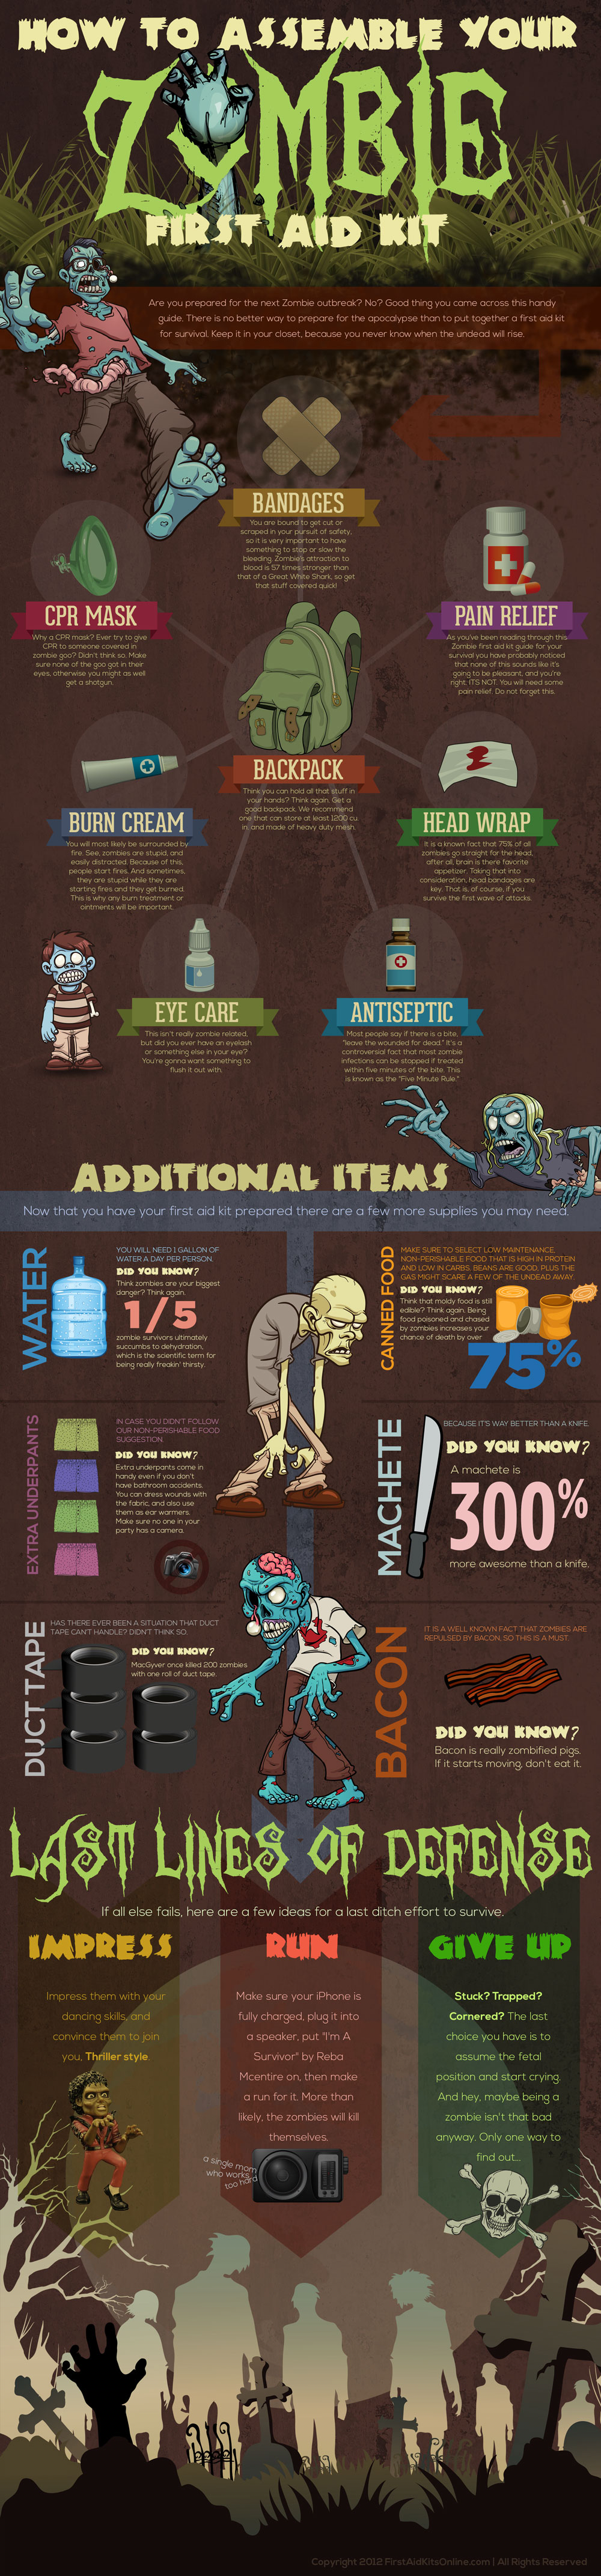 How to Create a Zombie Apocalypse First Aid Kit infographic